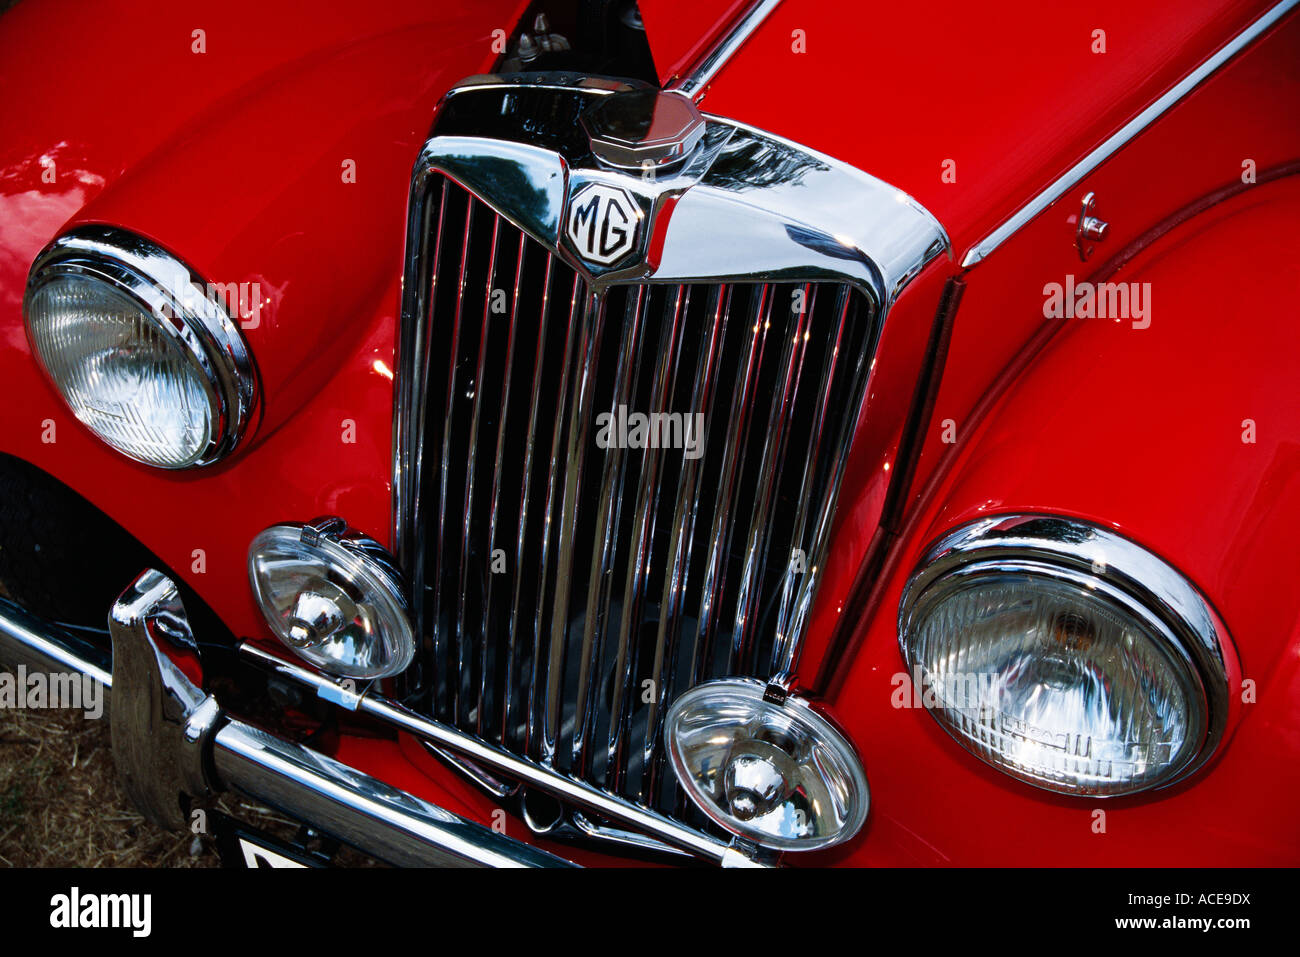 The hood of a vintage car close-up. - Stock Image